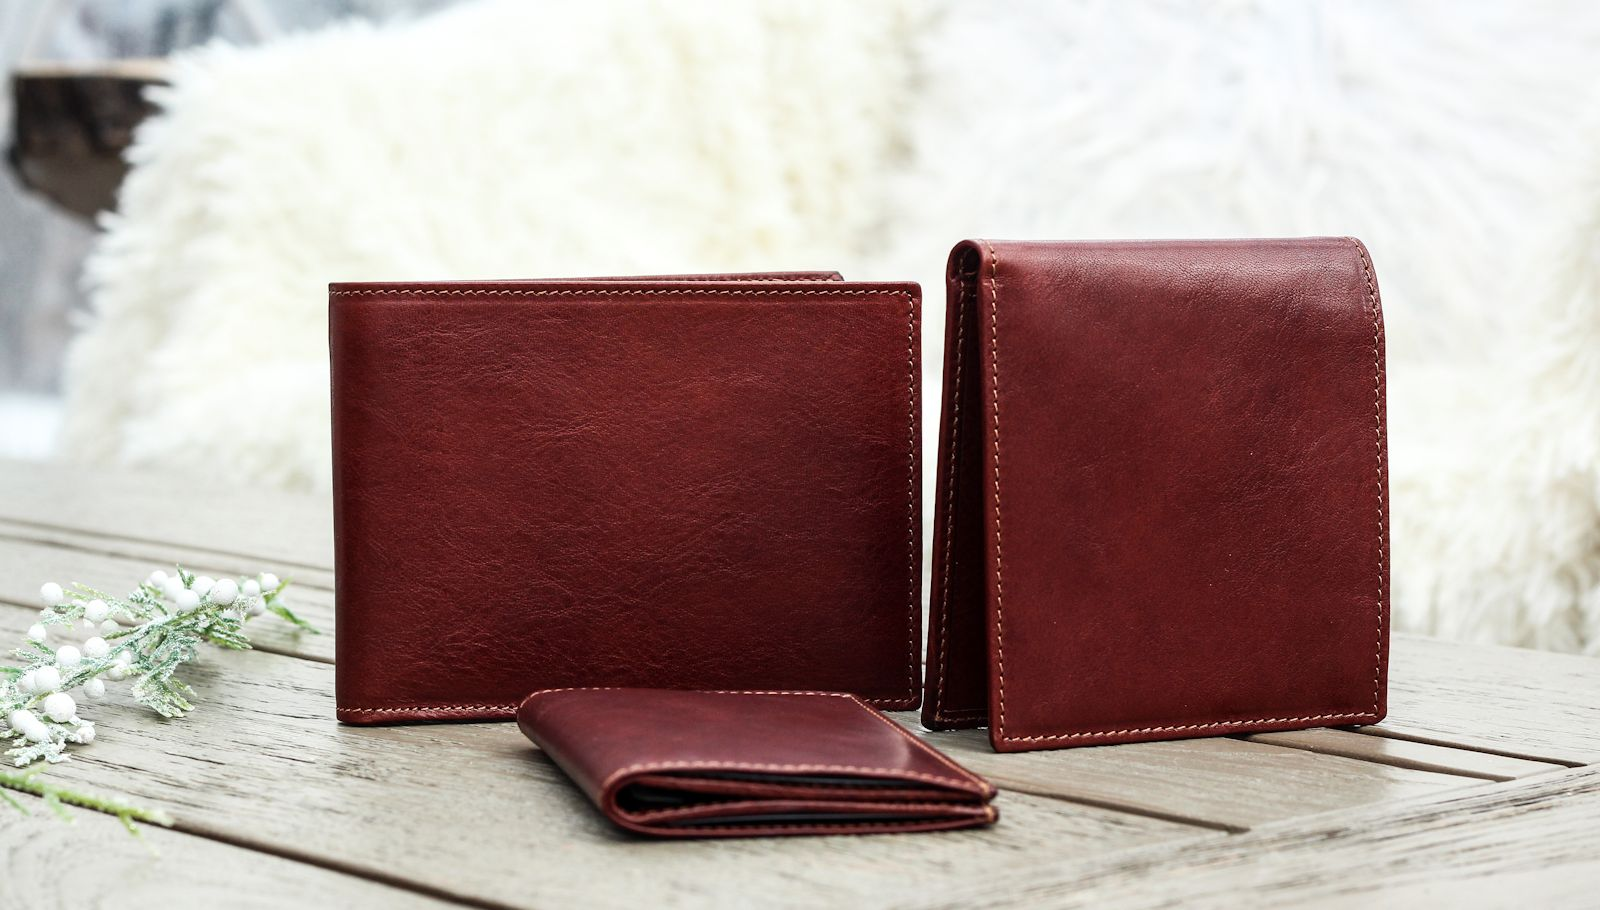 Italian handmade leather wallets